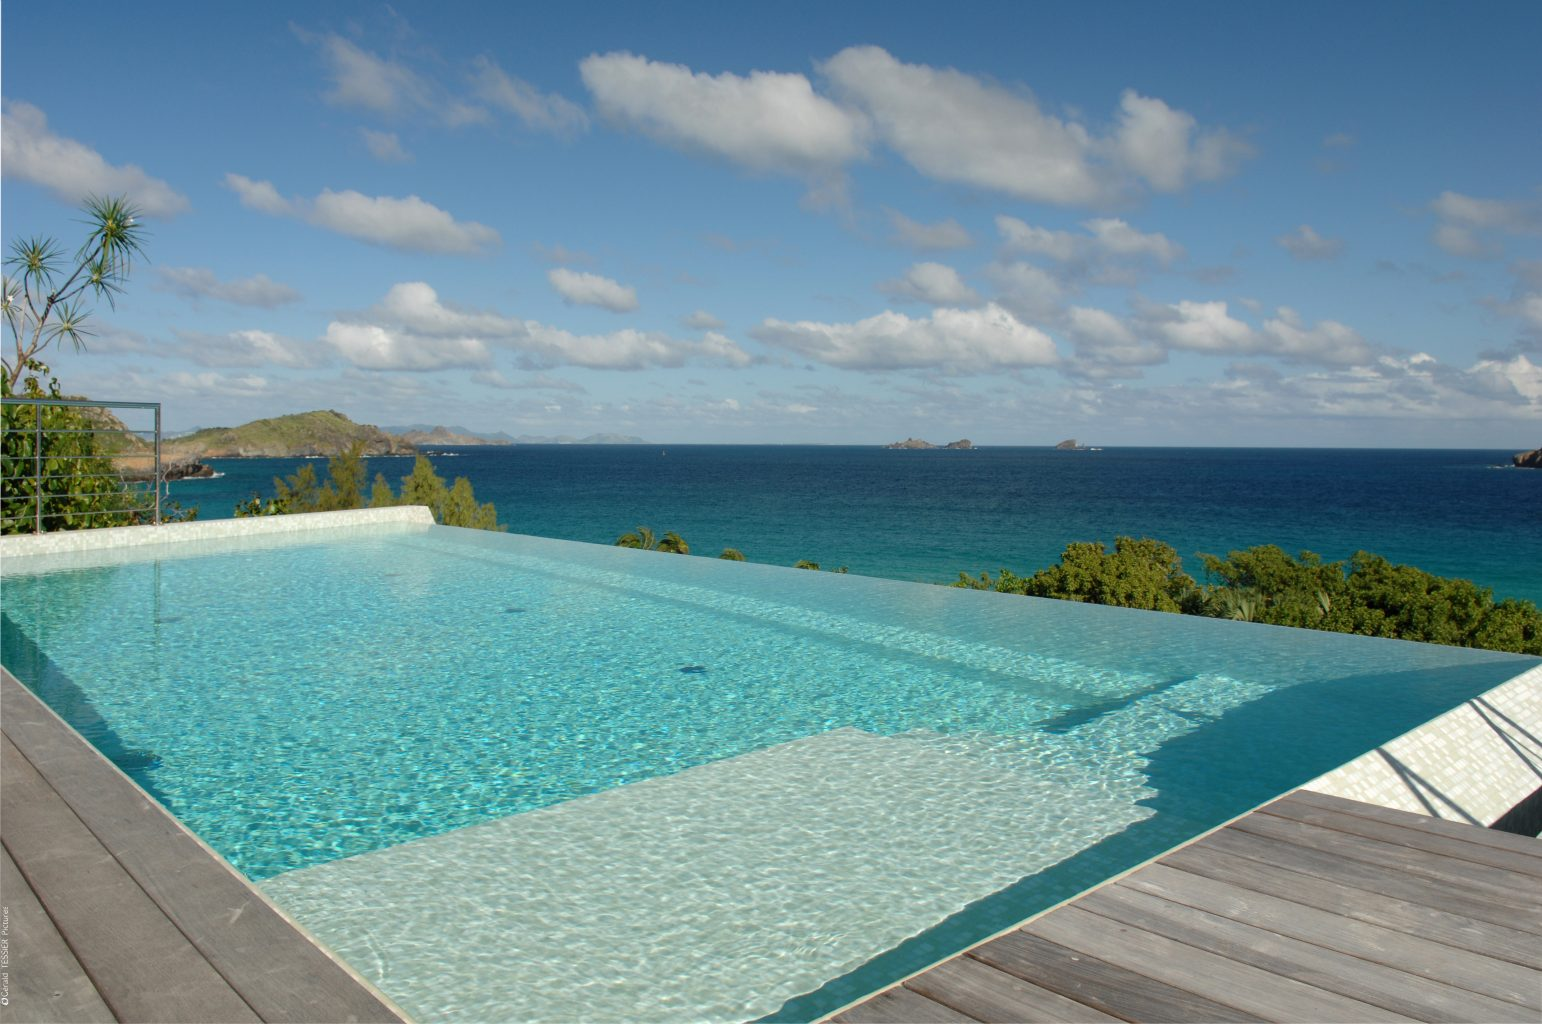 Villa Matajagui - Spacious and Modern Villa for Rent St Barth Located Few Minutes Away from Bar and Restaurants - Pool